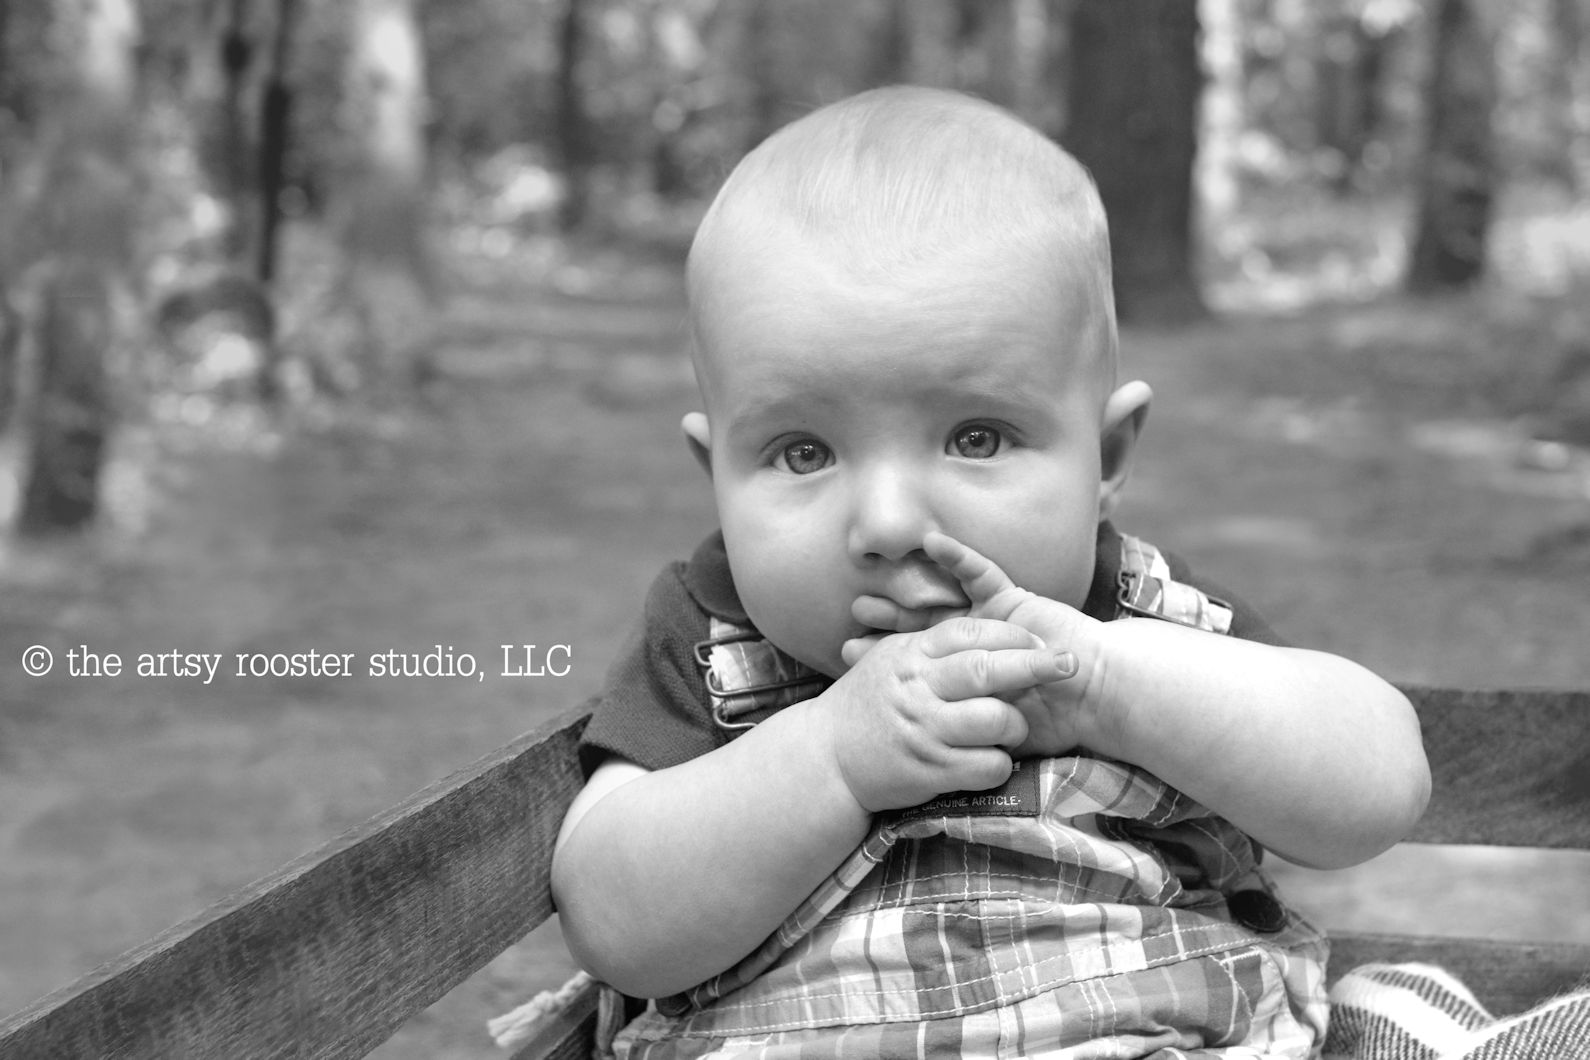 day-5-editing-babies-c-the-artsy-rooster-studio-llc